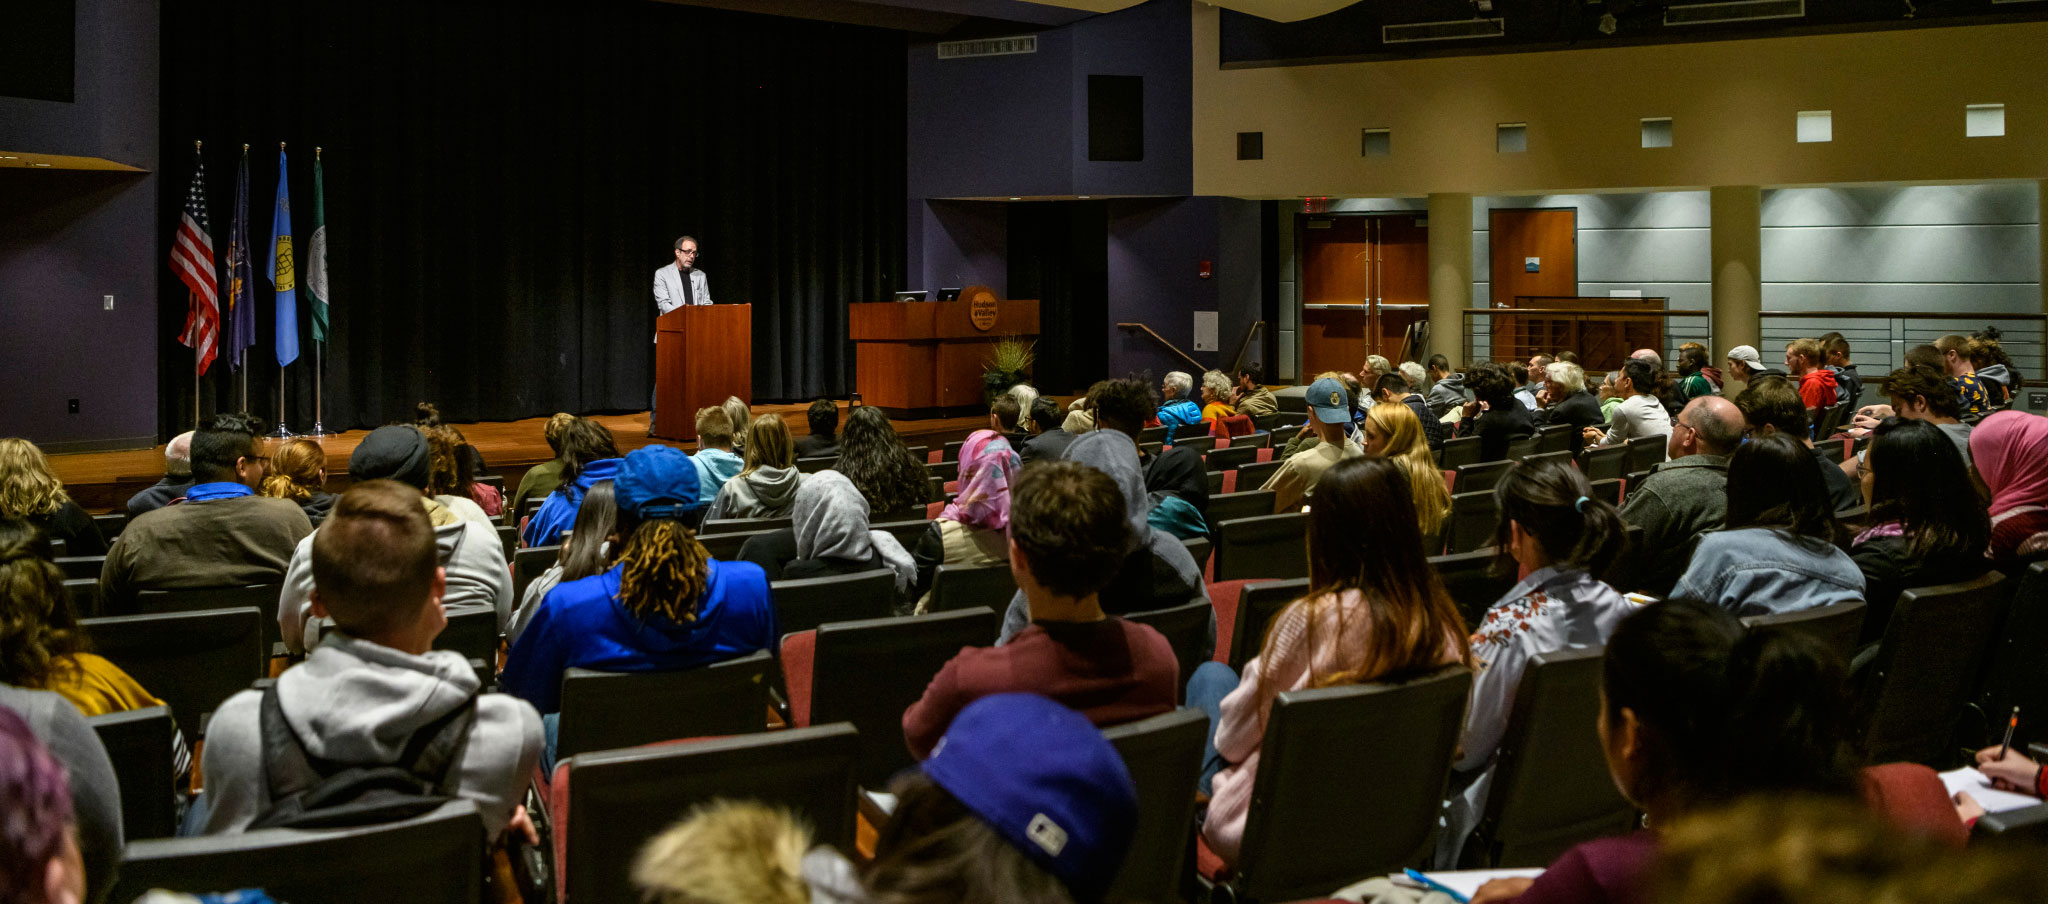 Students seated in the Bulmer Telecommunications Center Auditorium listening to a voices lecture